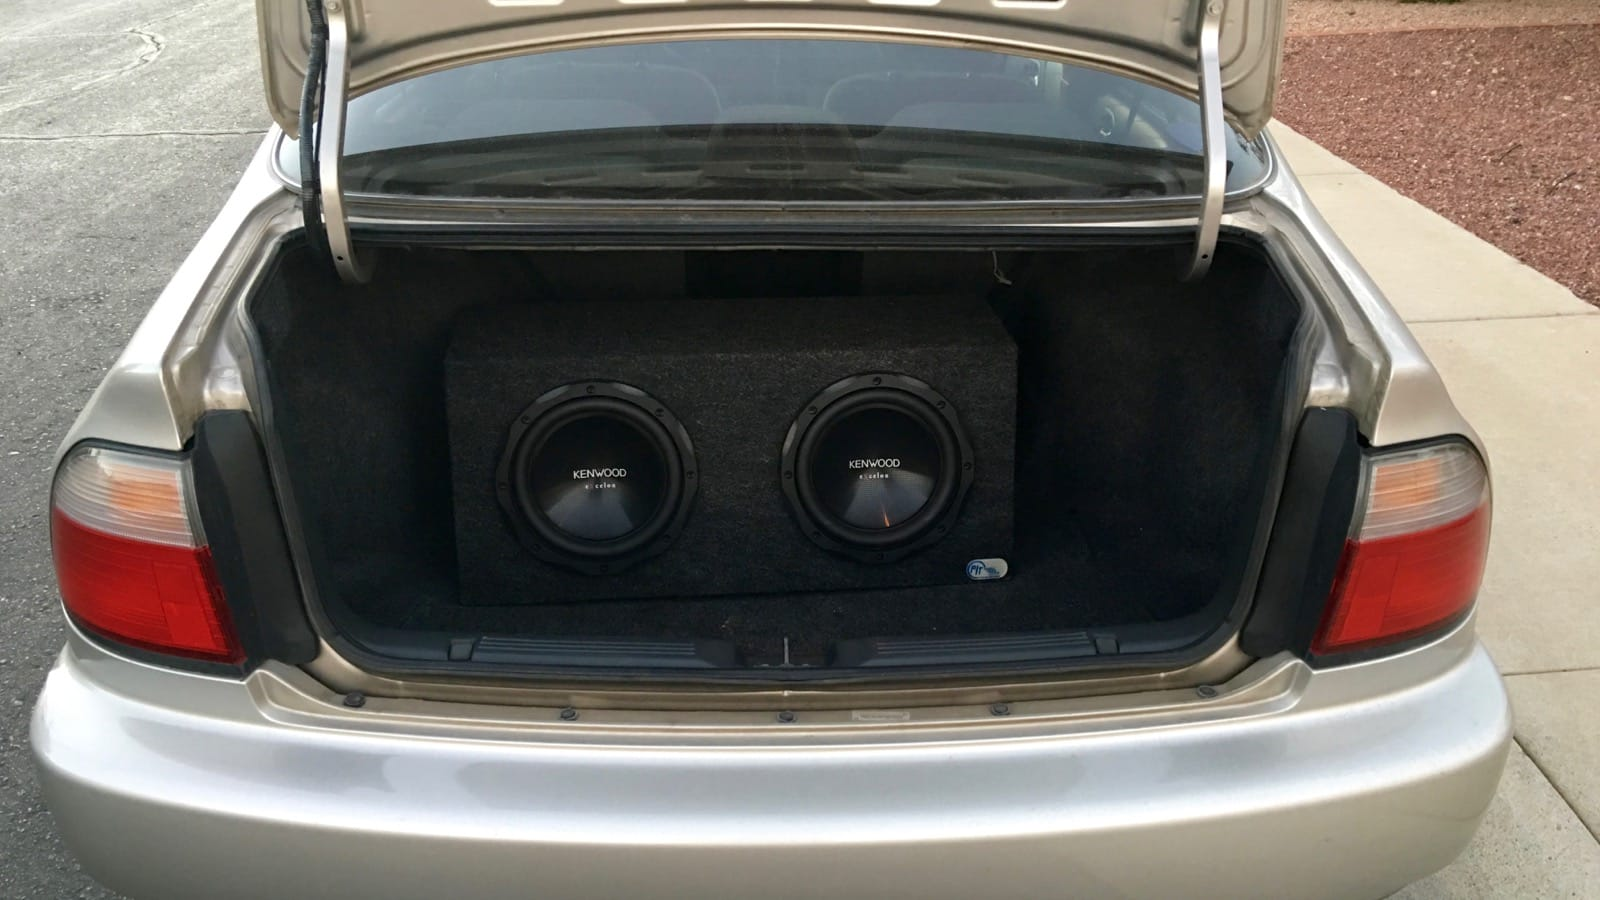 Twin 10-inch subwoofers in trunk of Honda Accord